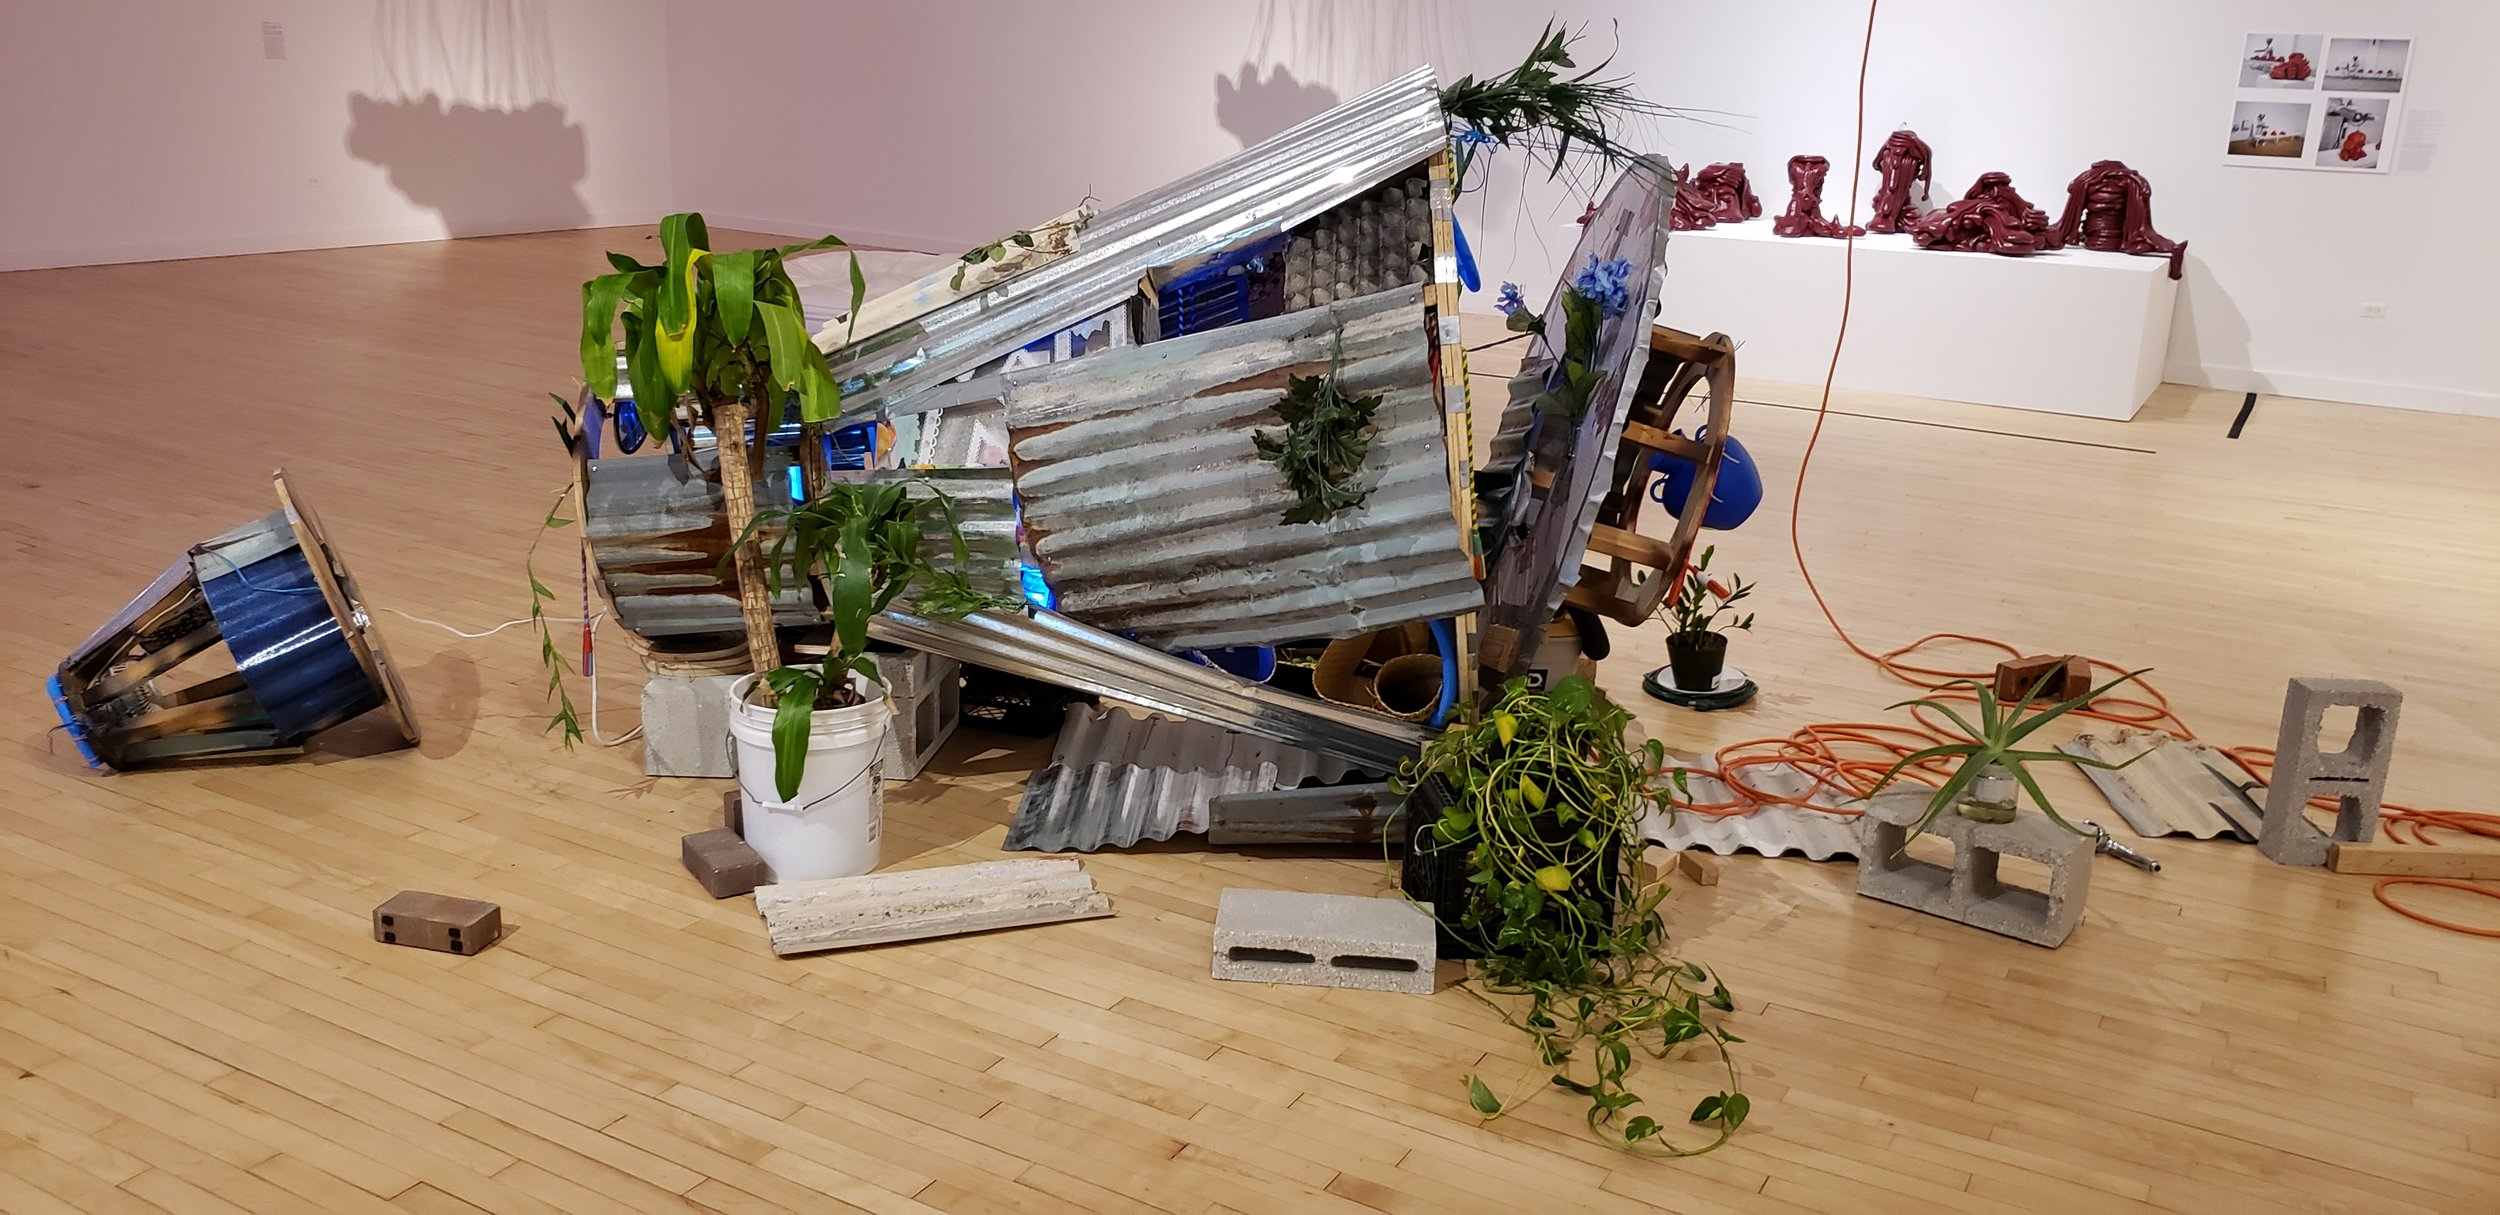 Contemporary art installation on a hardwood floor. The art work looks like a 1970's space capsule, but covered in sheet metal, plants, and bricks. Extension cables can be seen running out of the piece as well. In the background are other photos and statues.